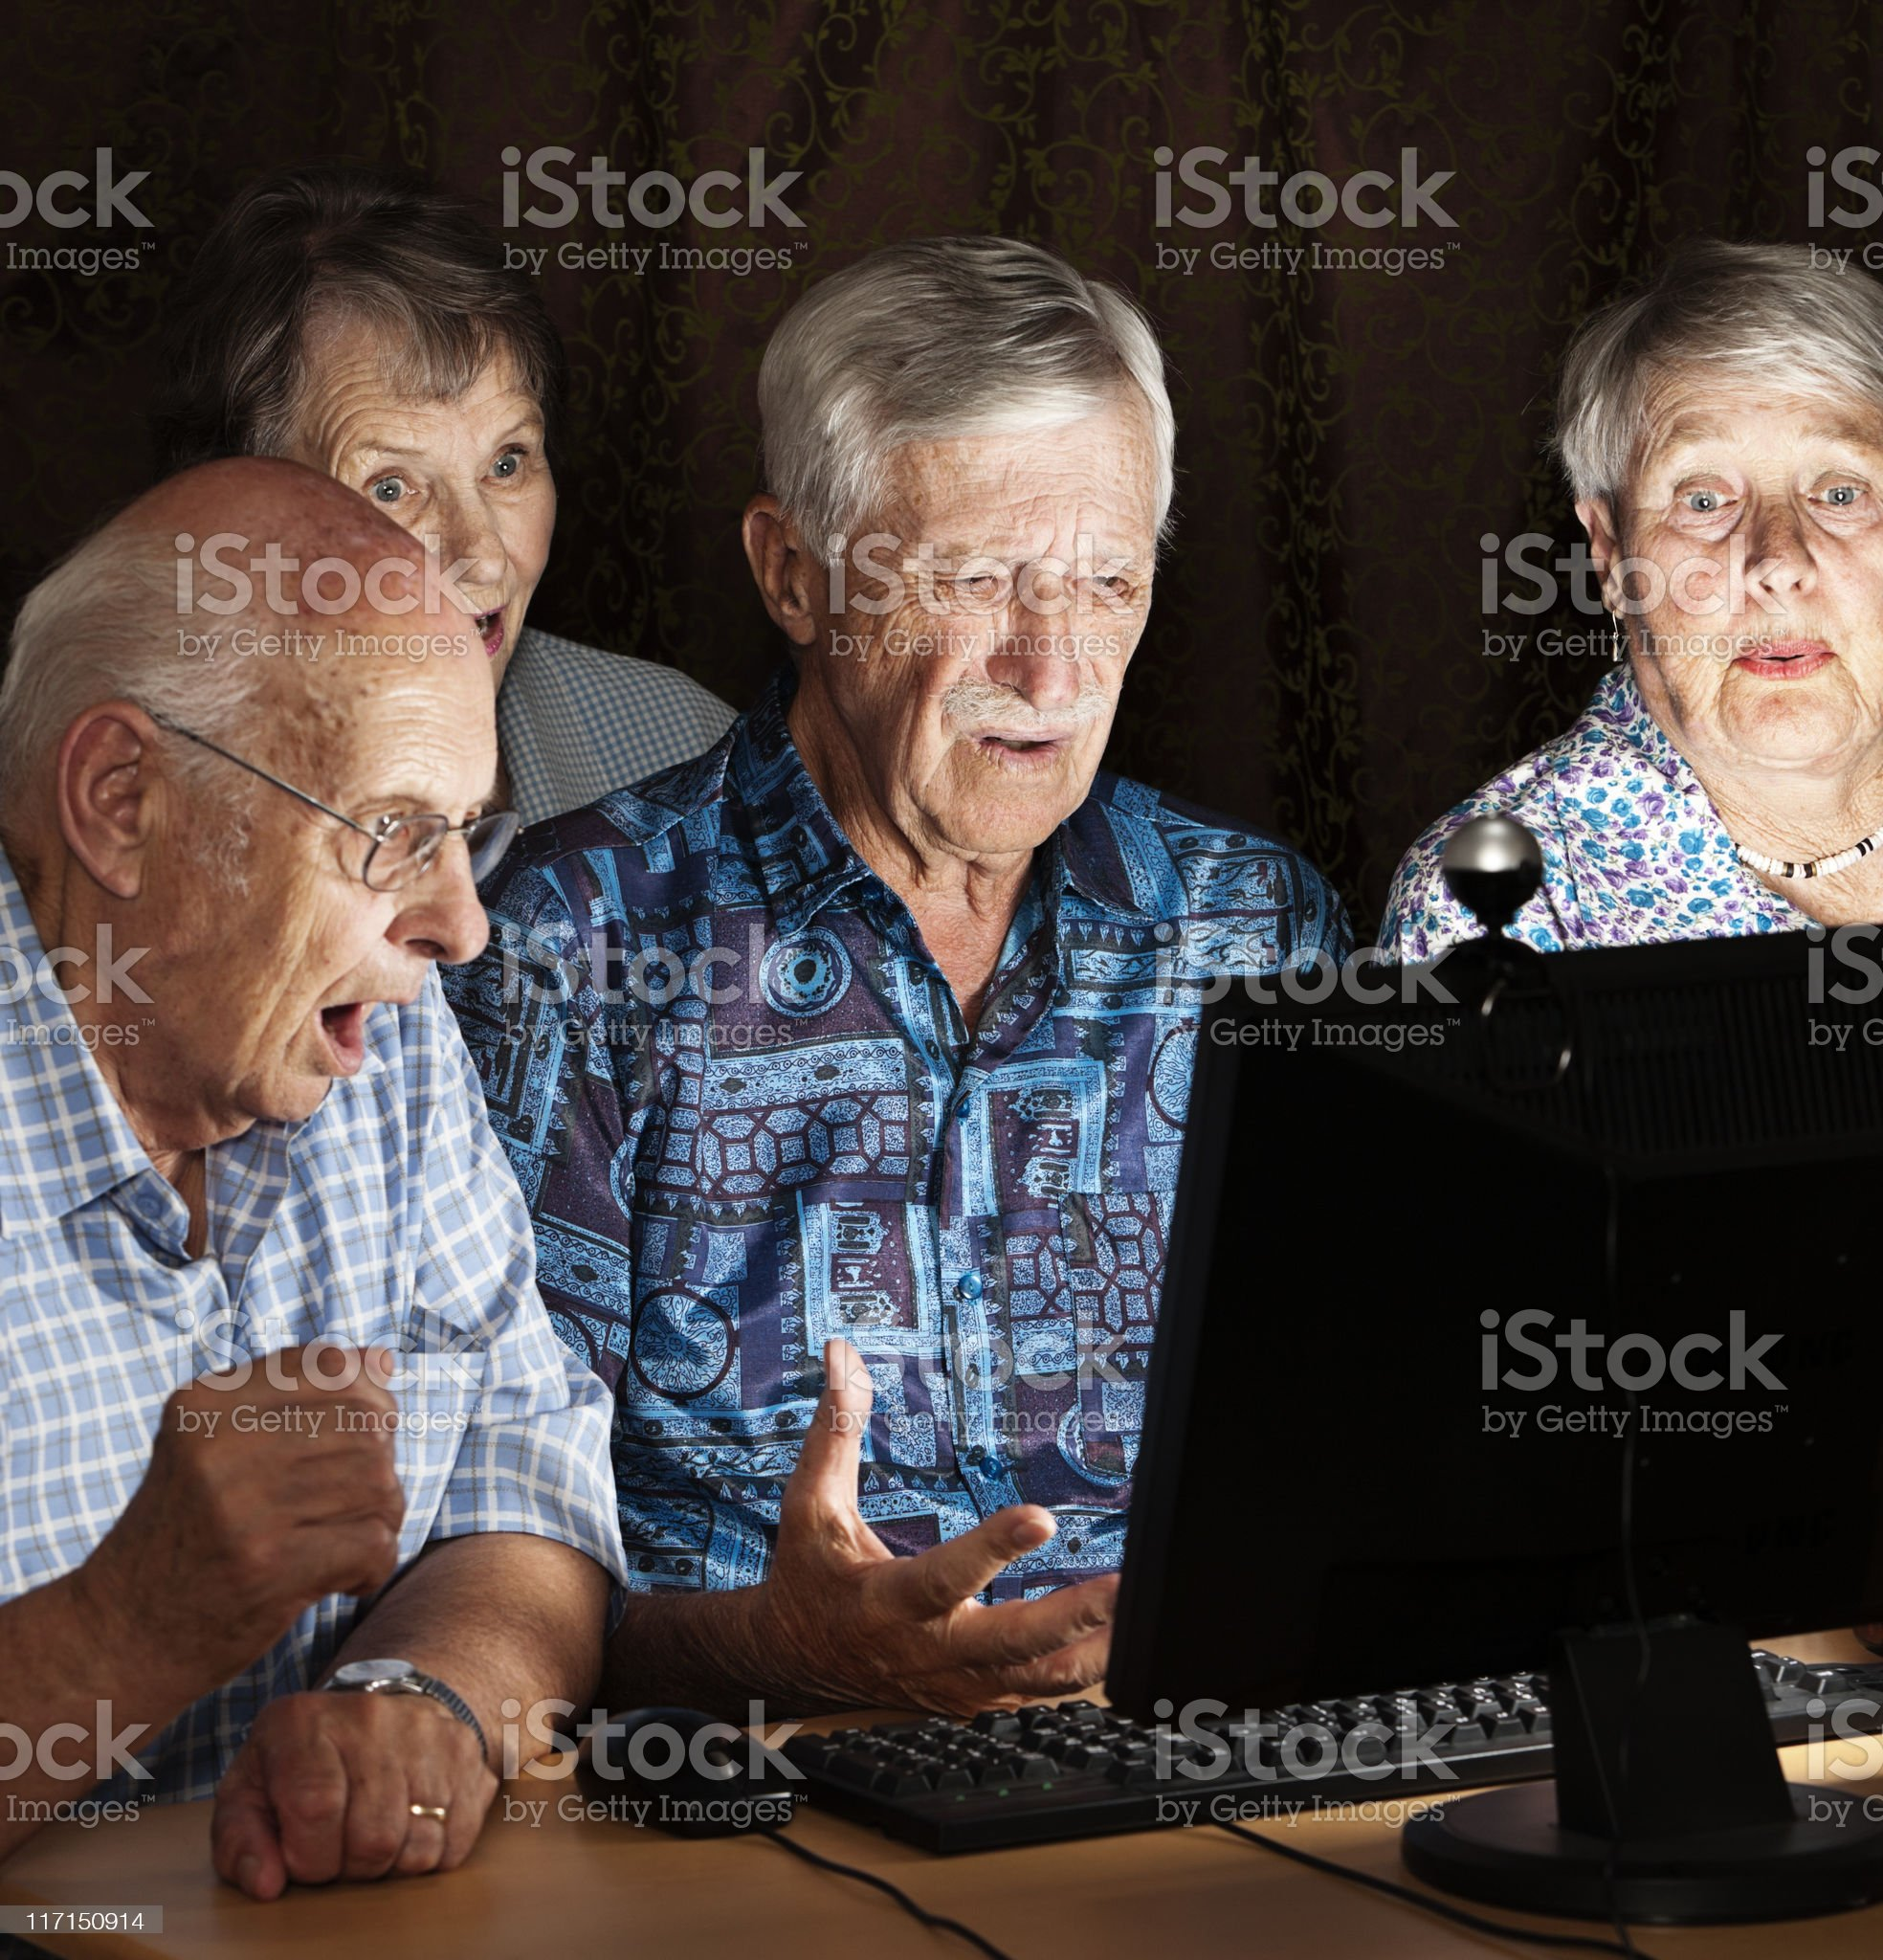 Four old people shocked by image on a computer monitor royalty-free stock photo